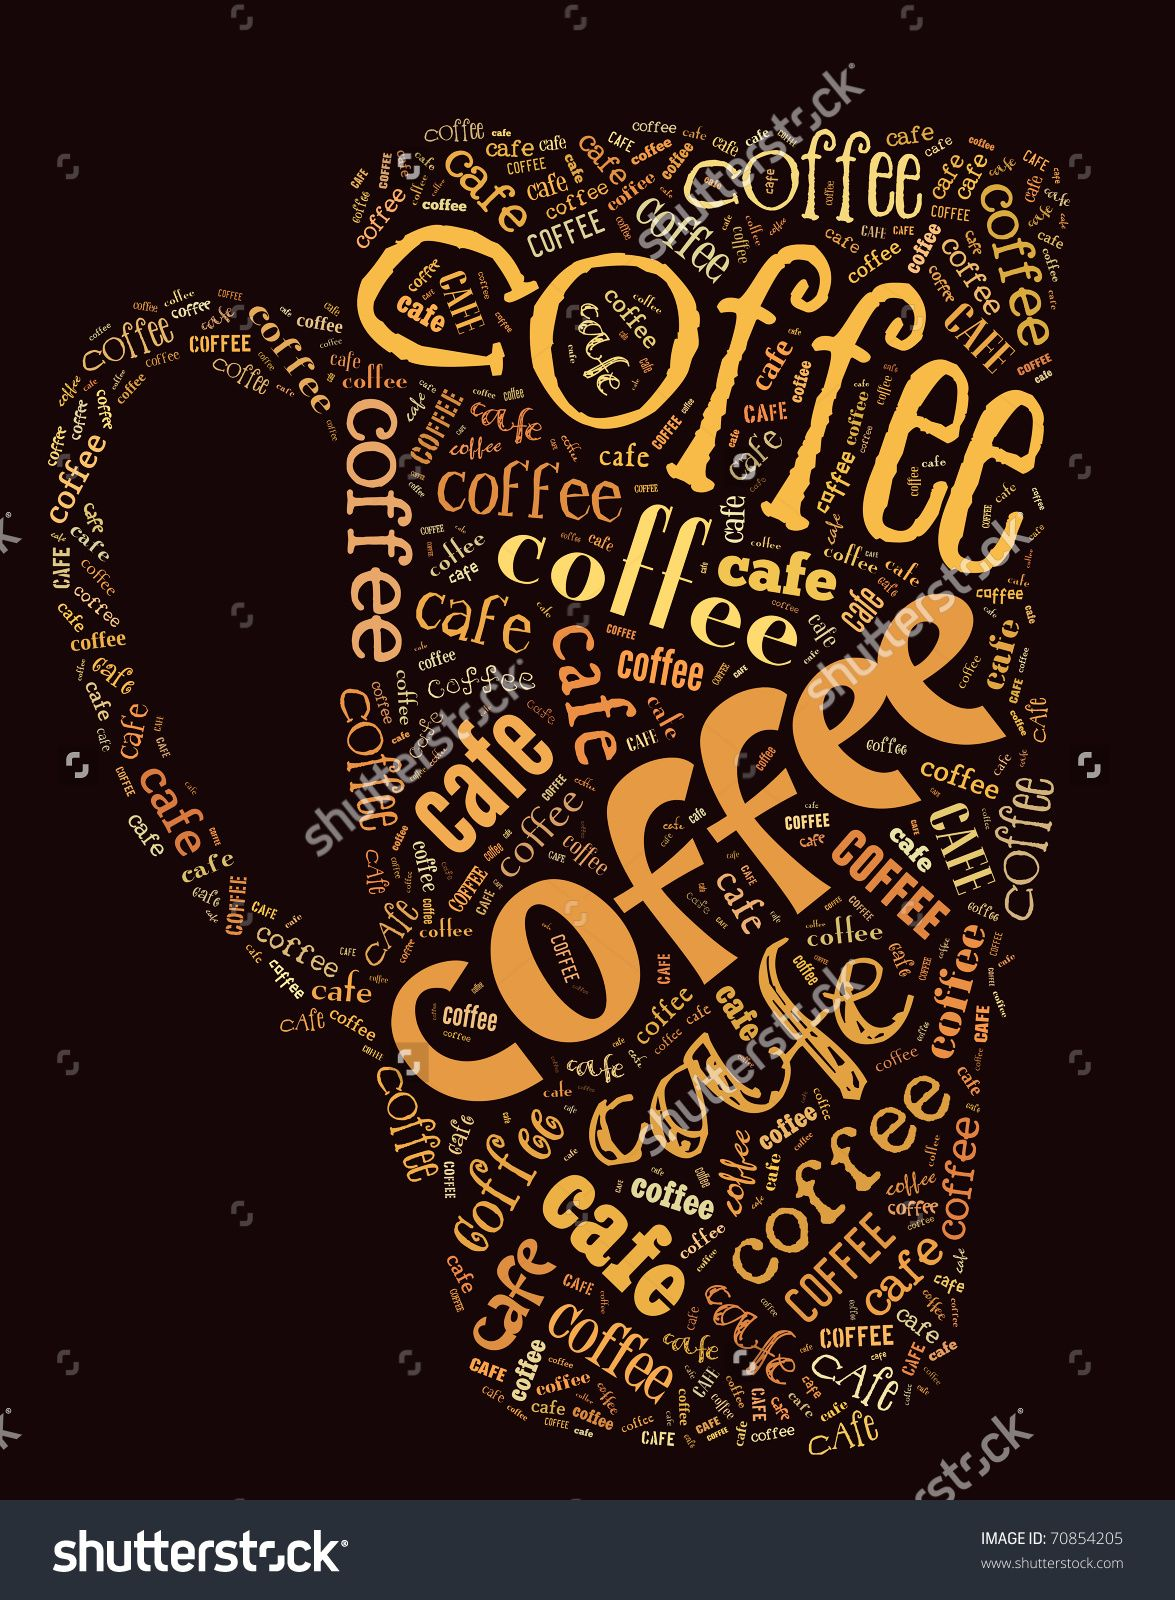 Kaffee Poster Image Result For Cafe Poster Ideas Coffee Coffee Cafe